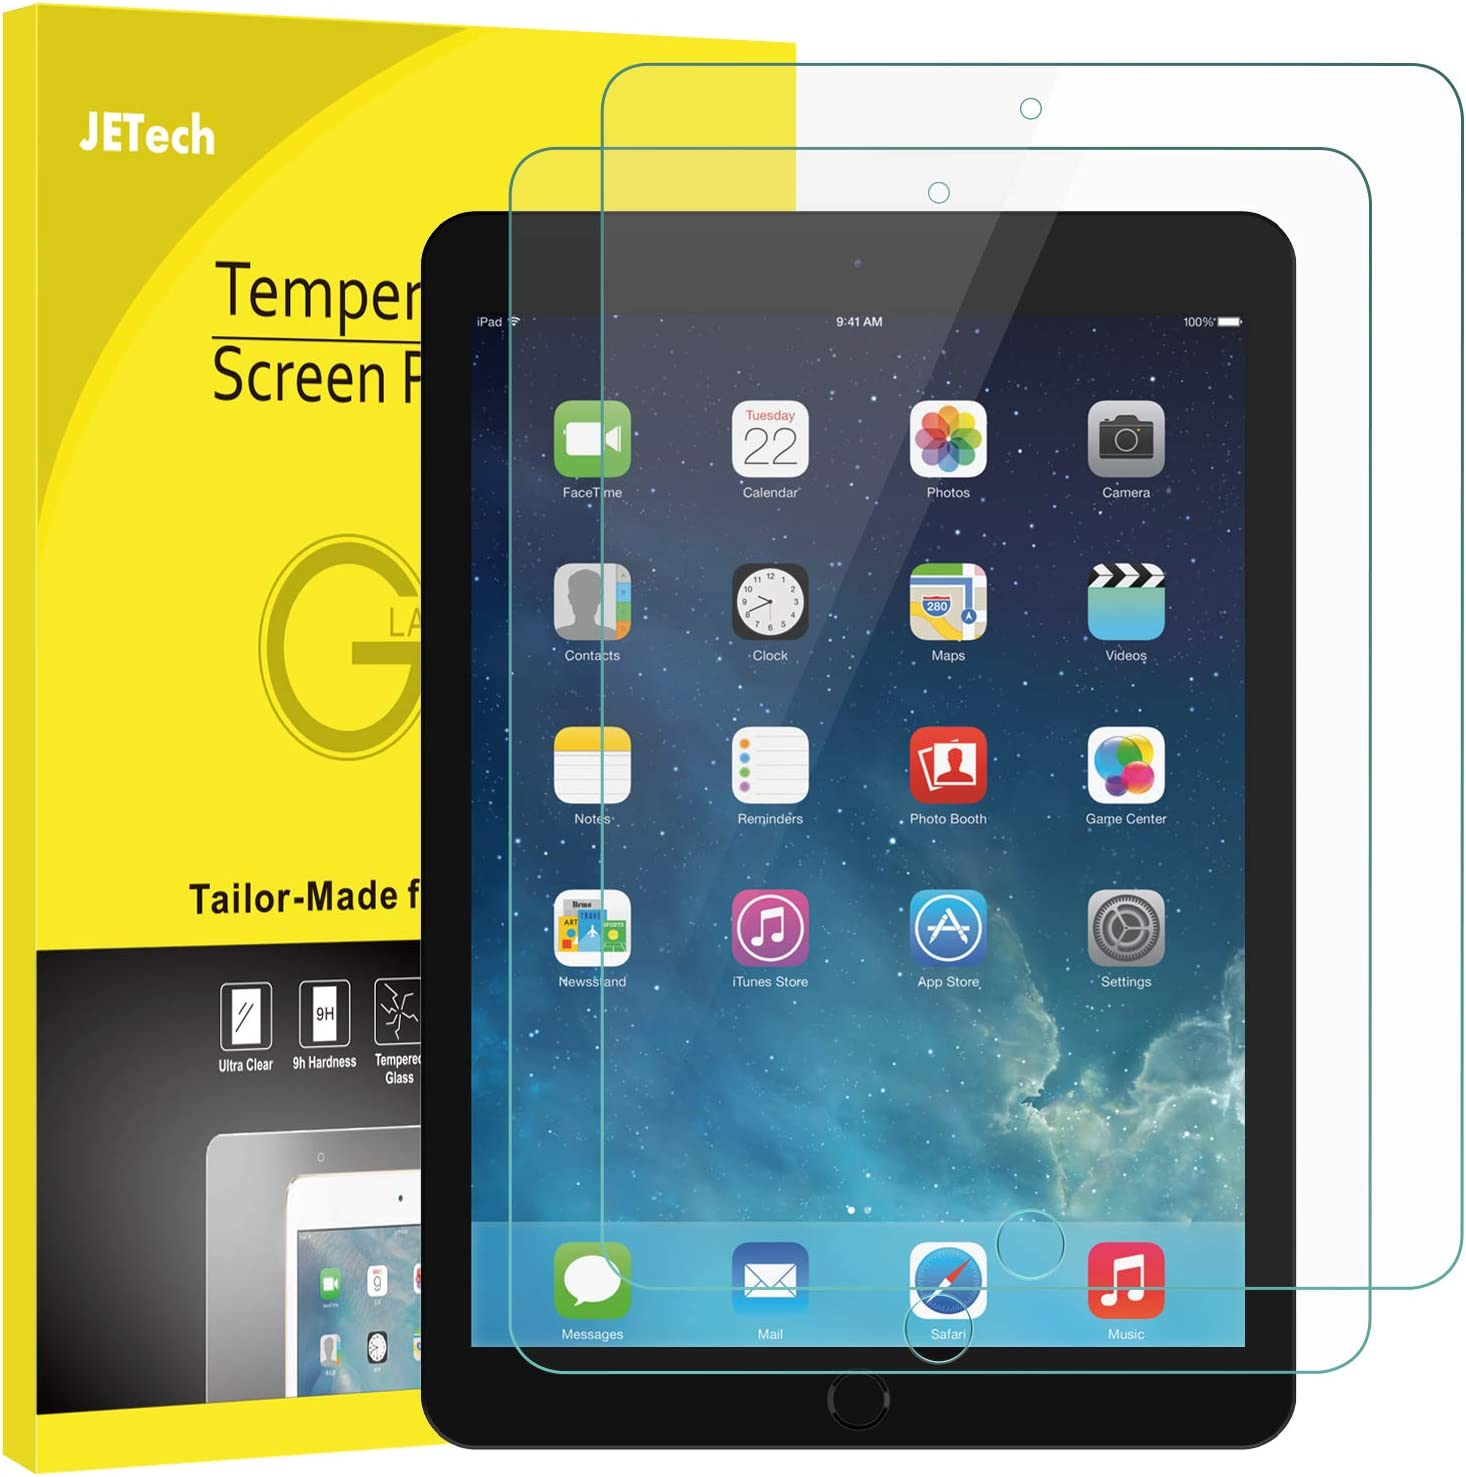 JETech Screen cheap Protector famous for iPad mini Not 4 2 Temper 3 1